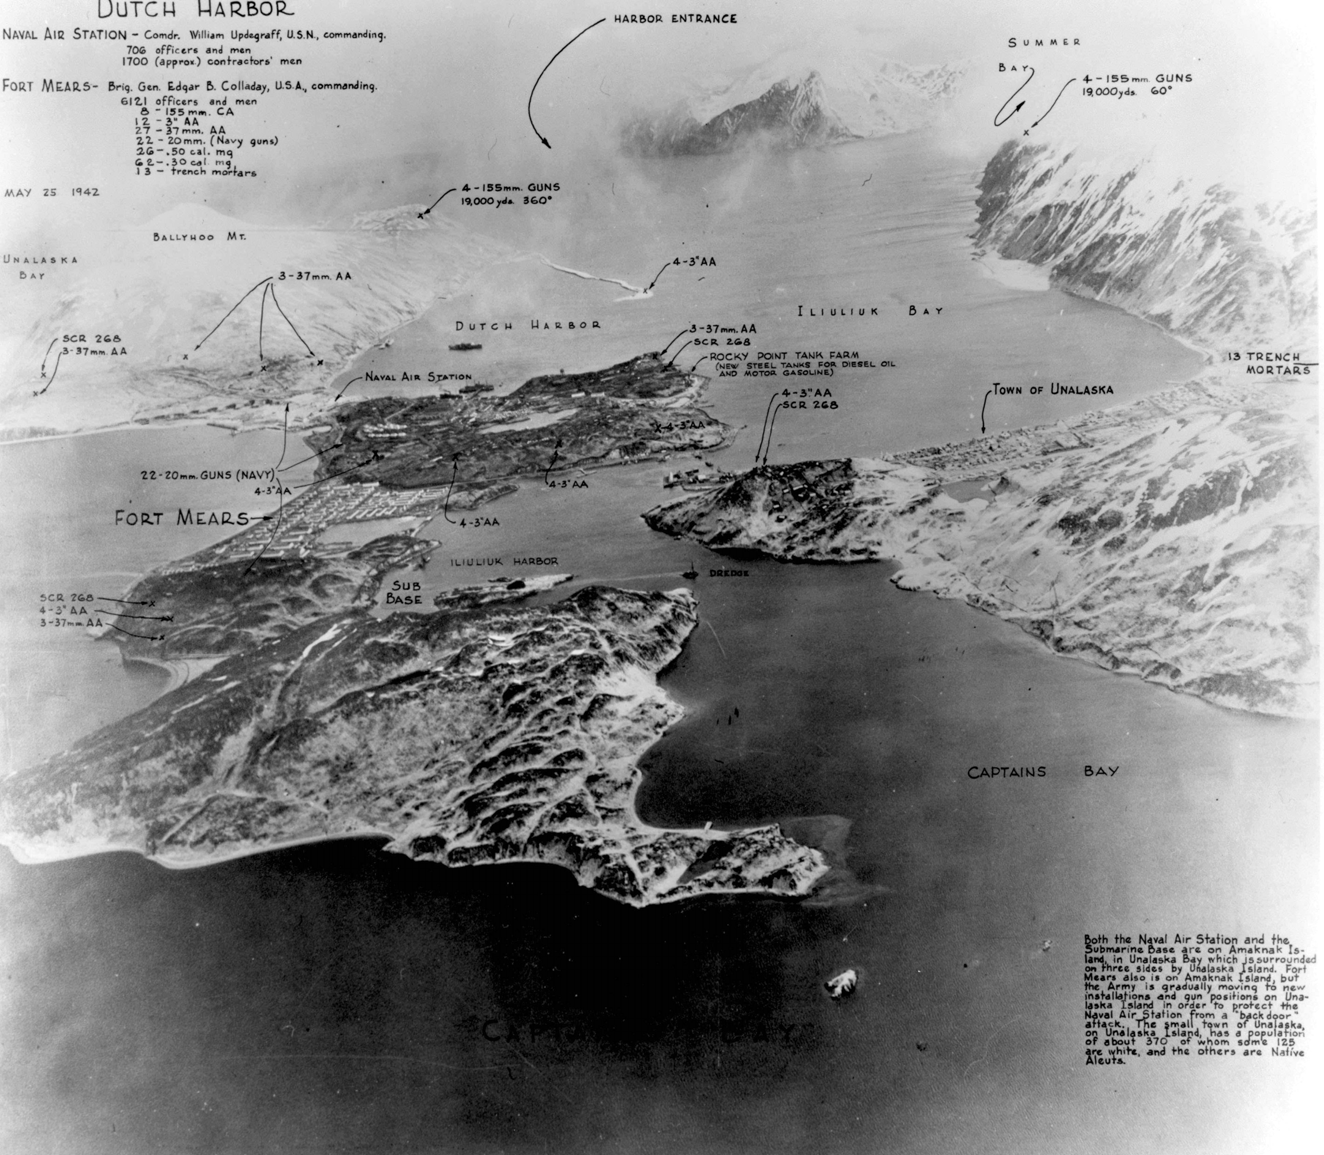 black and white aerial photo of islands and water with handwritten annotations